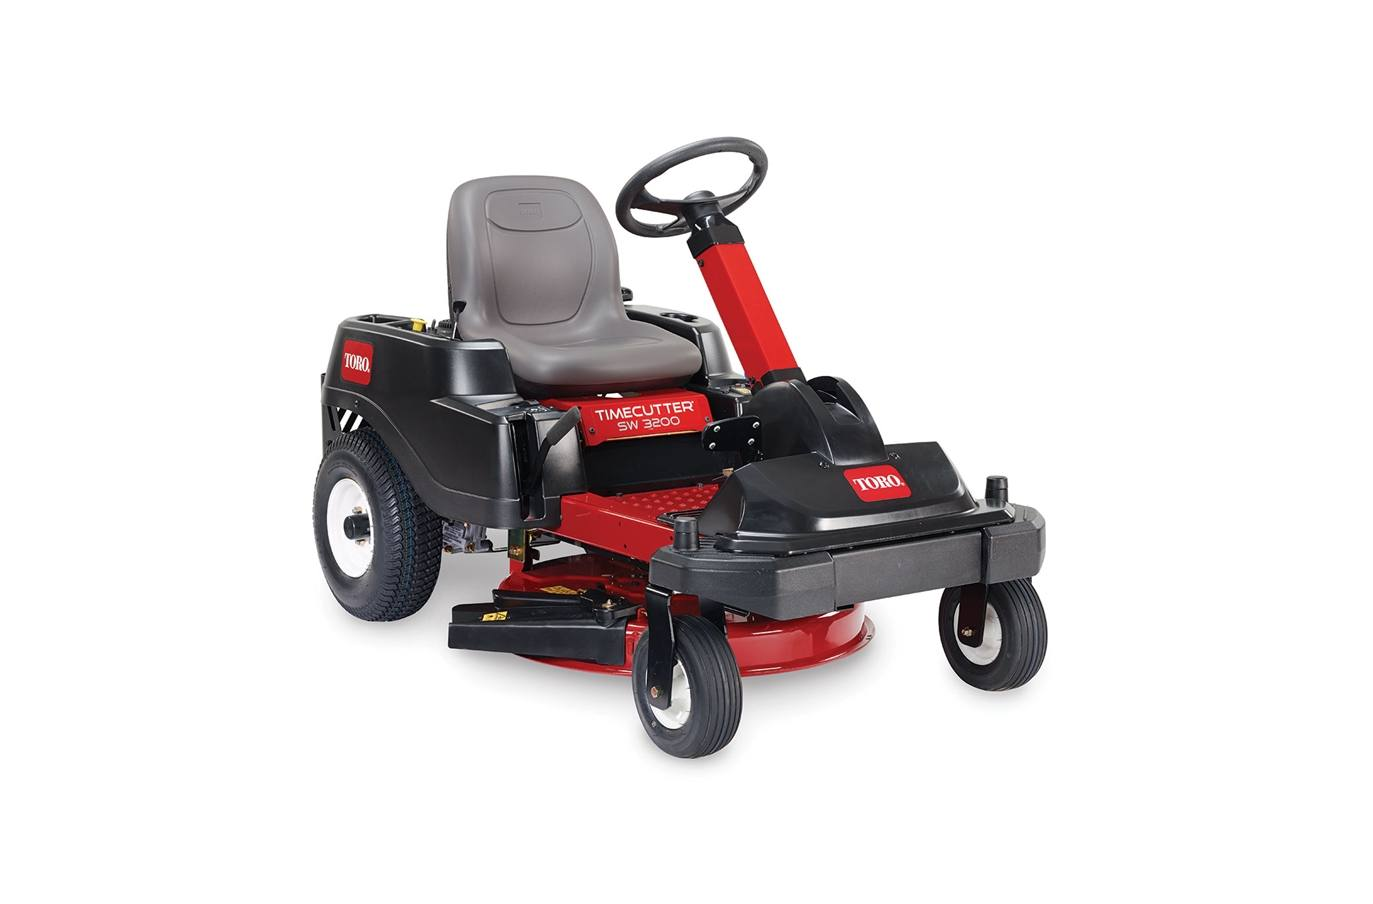 Inventory from Toro Alan's Lawnmower & Garden Center